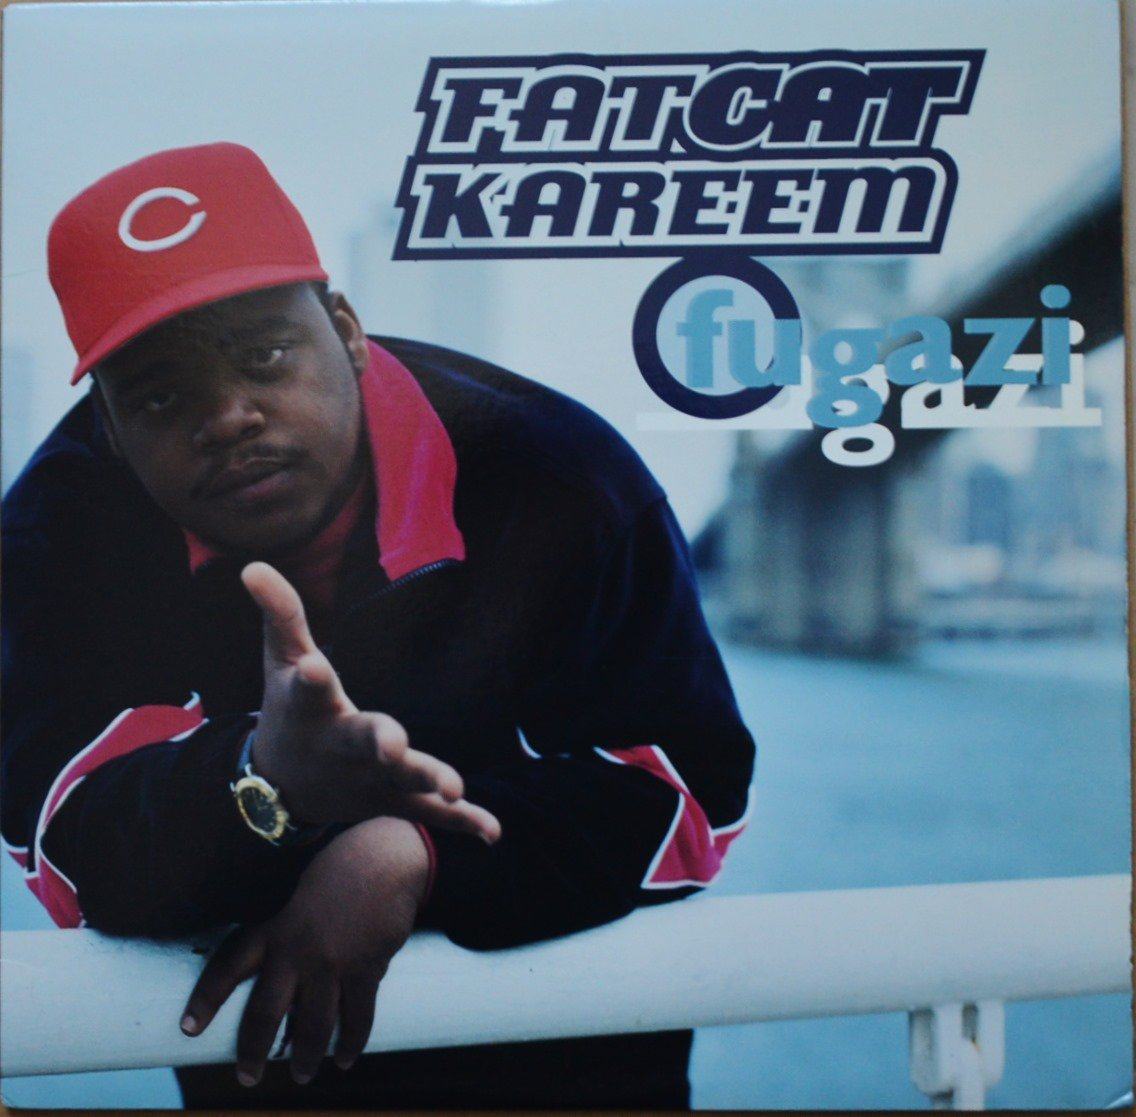 FAT CAT KAREEM / FUGAZI / MONEY GAME (PROD BY. DOMINGO) (12